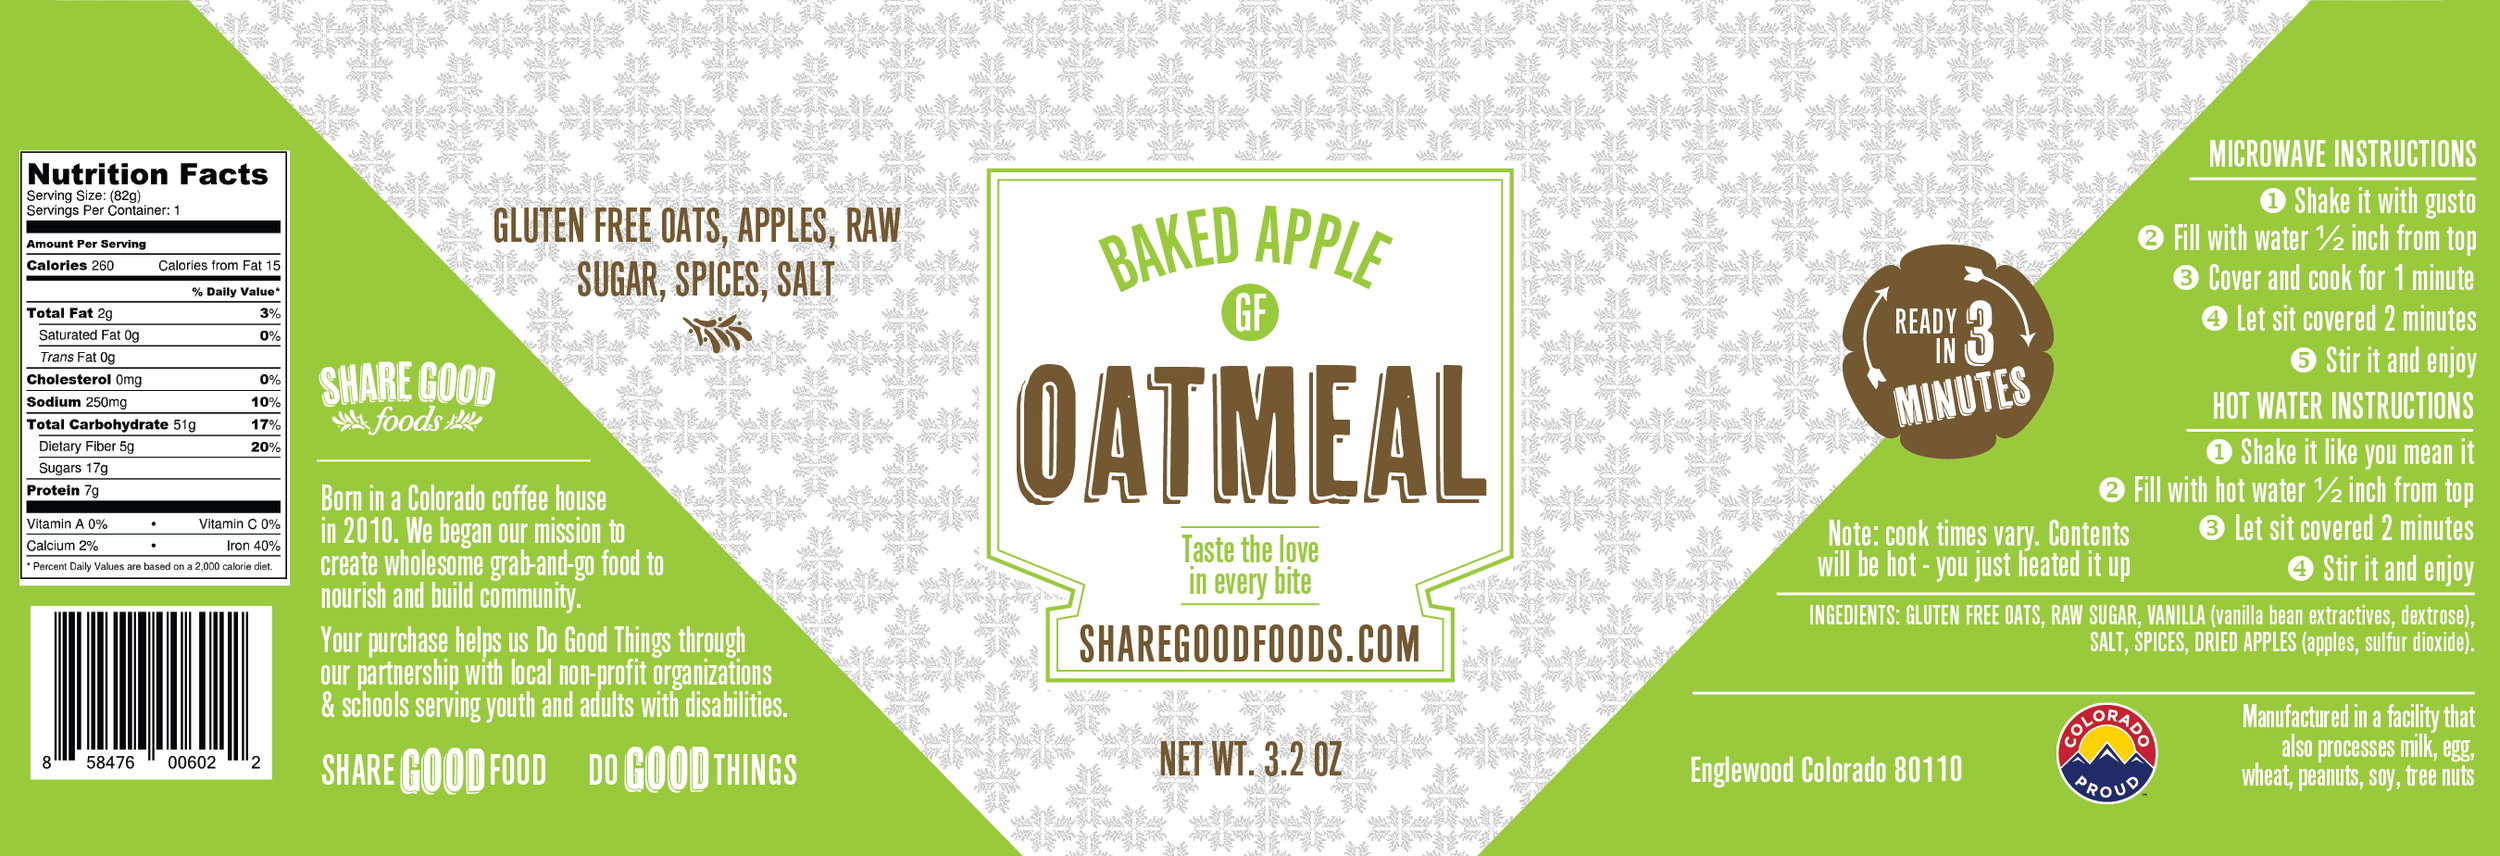 Baked Apple Oatmeal.png